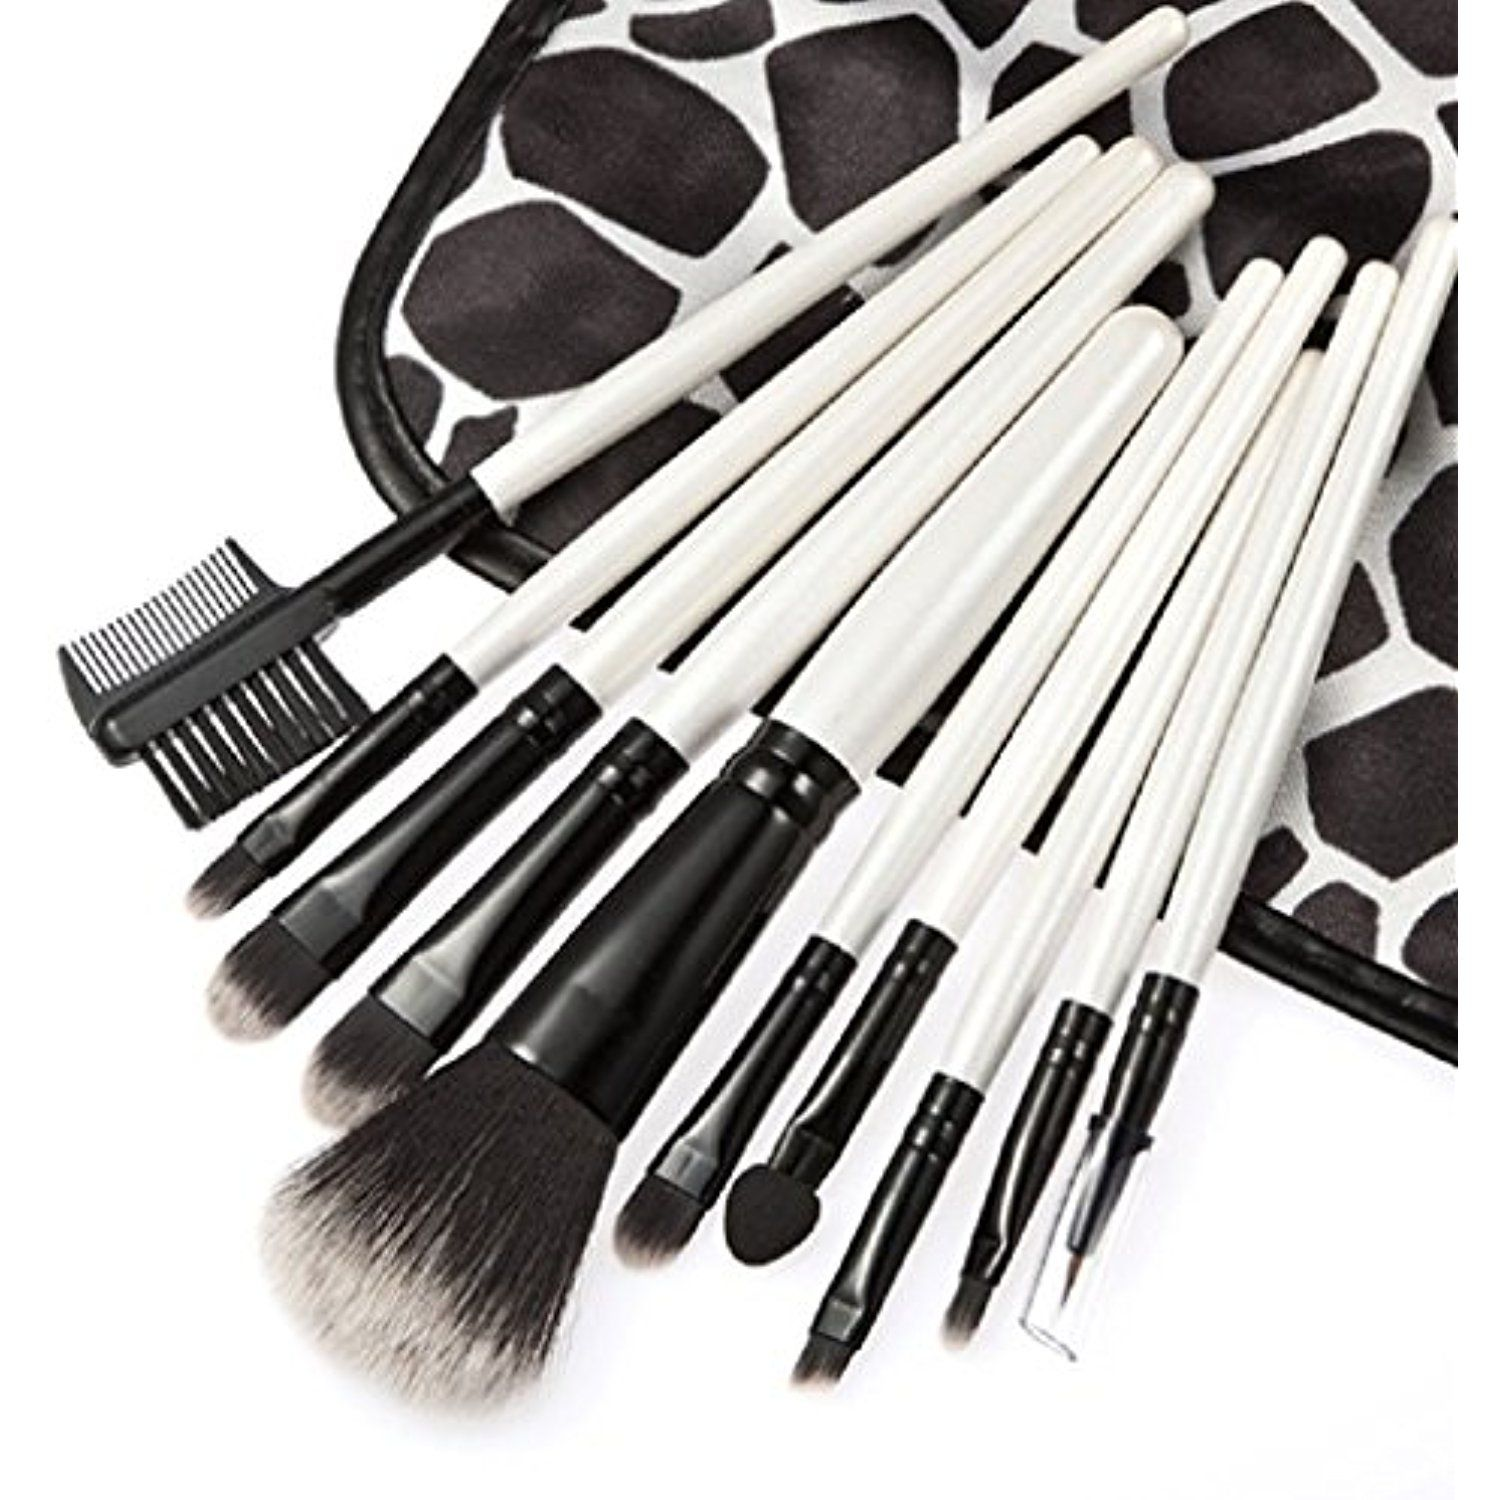 Bh cosmetics advanced brush set Makeup brushes guide